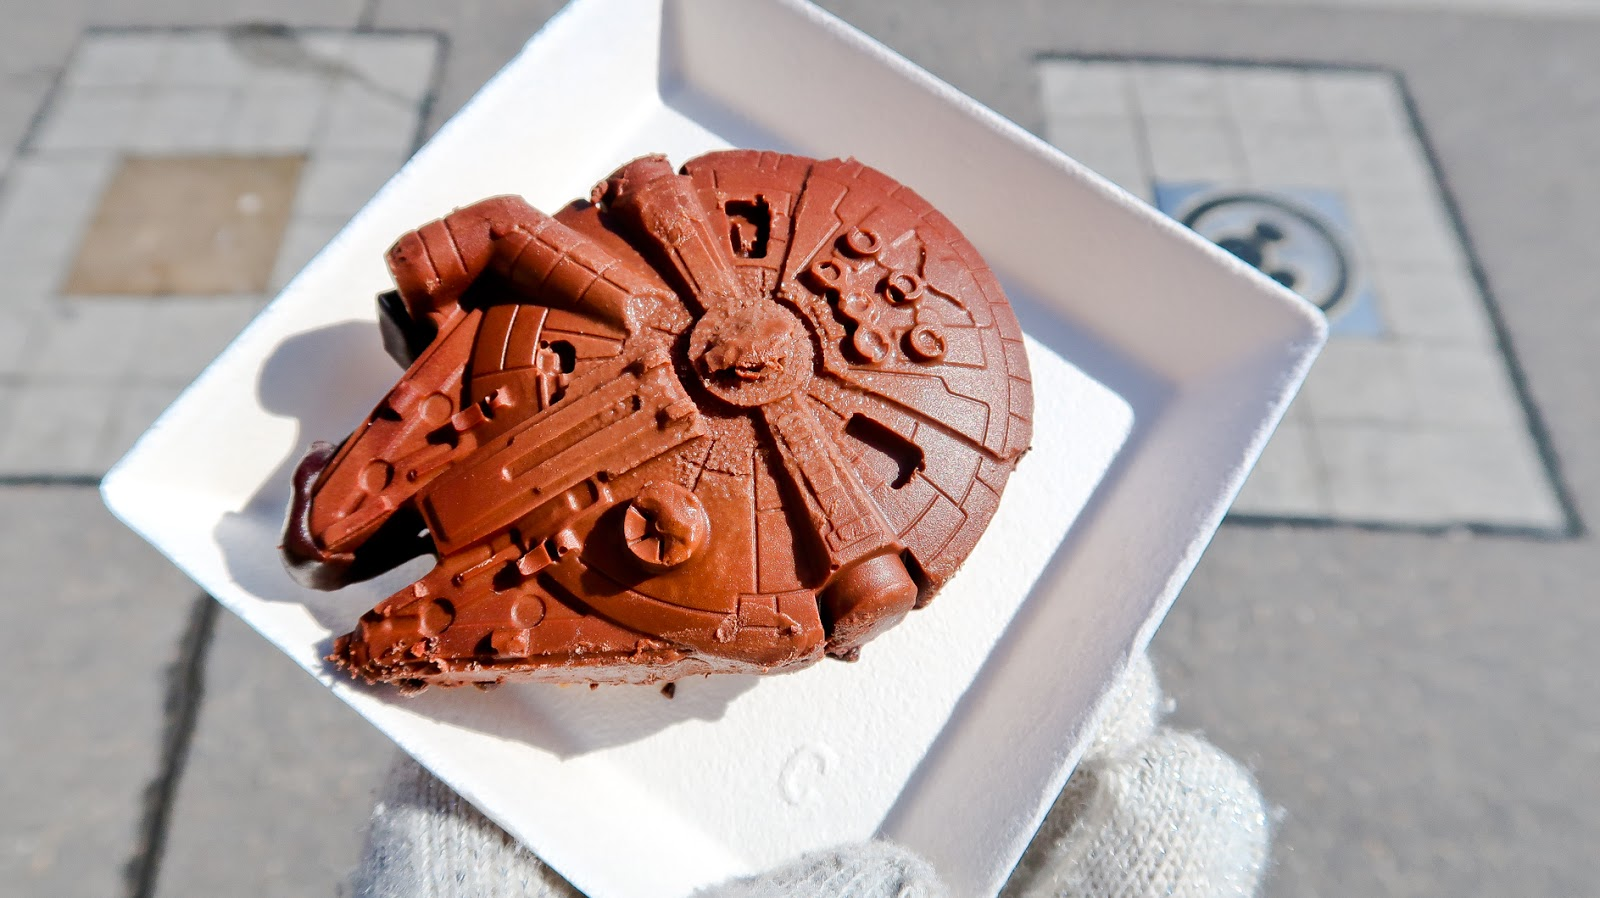 star wars disney snacks, where to eat as a vegetarian disneyland paris, vegetarian in disneyland paris,